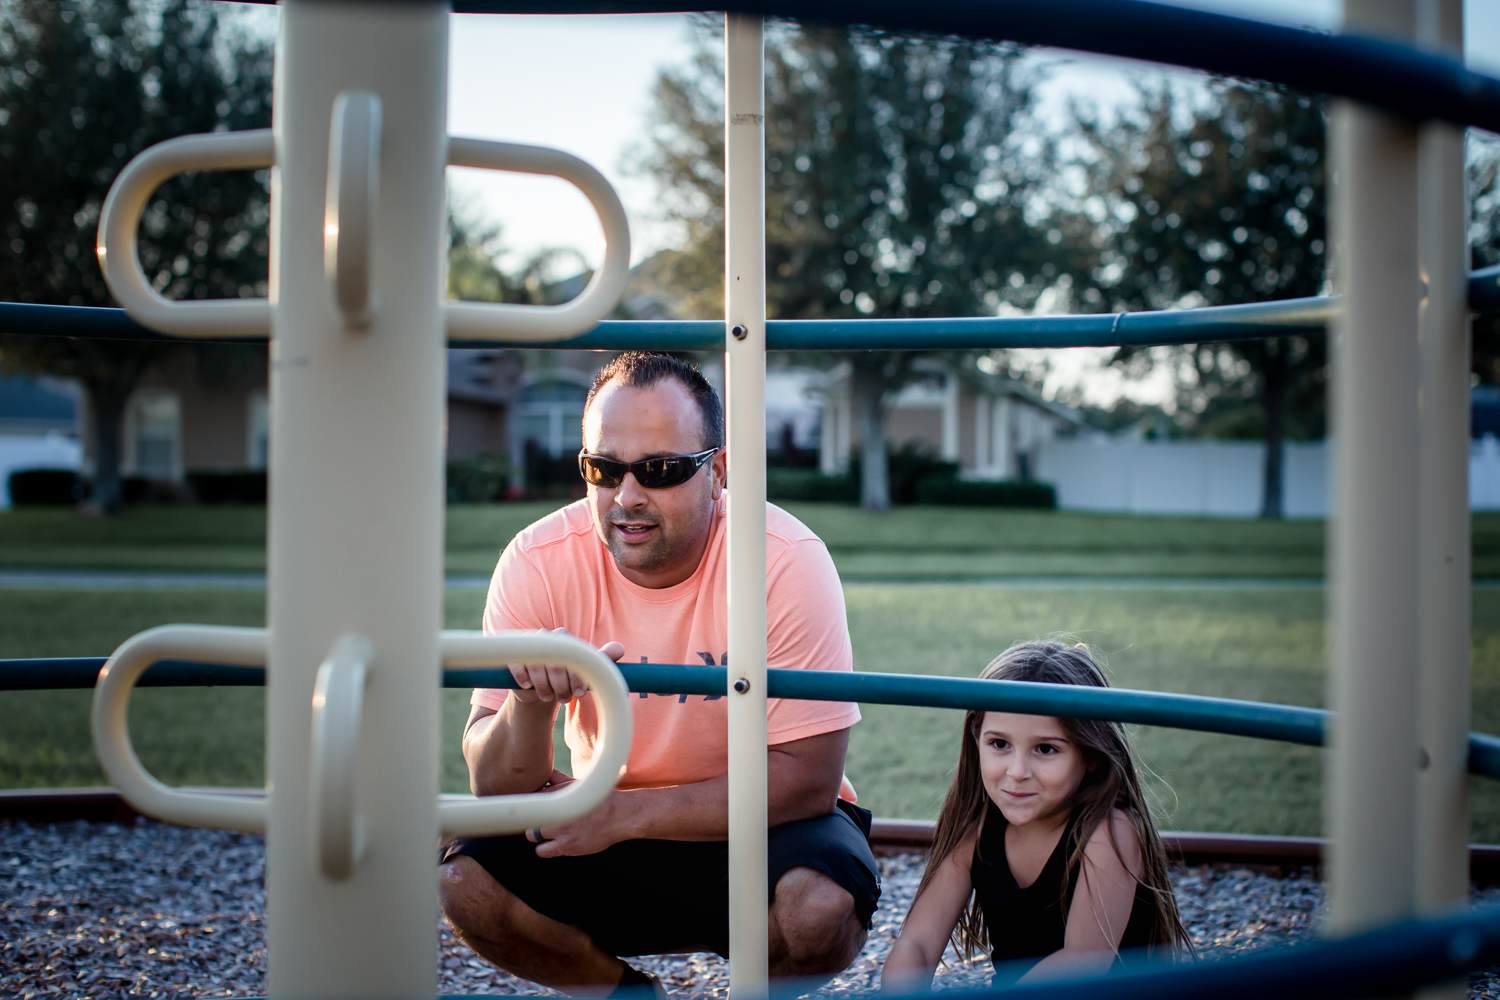 Dad and daughter play hide-and-seek at playground  in Clermont, Florida during family photography session.